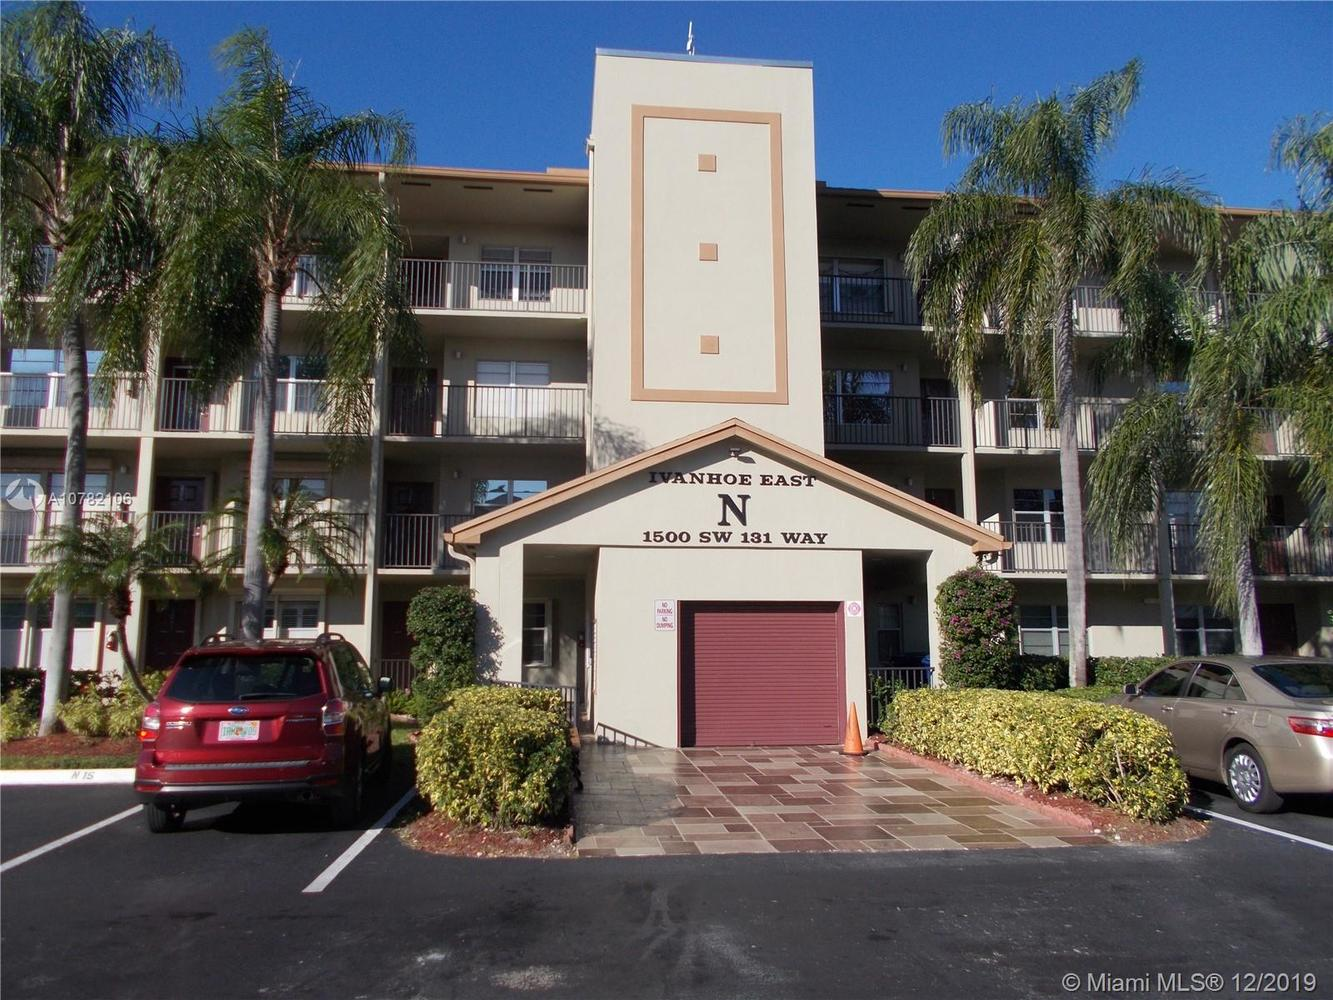 1500 Southwest 131st Way, Unit 103N Pembroke Pines, FL 33027